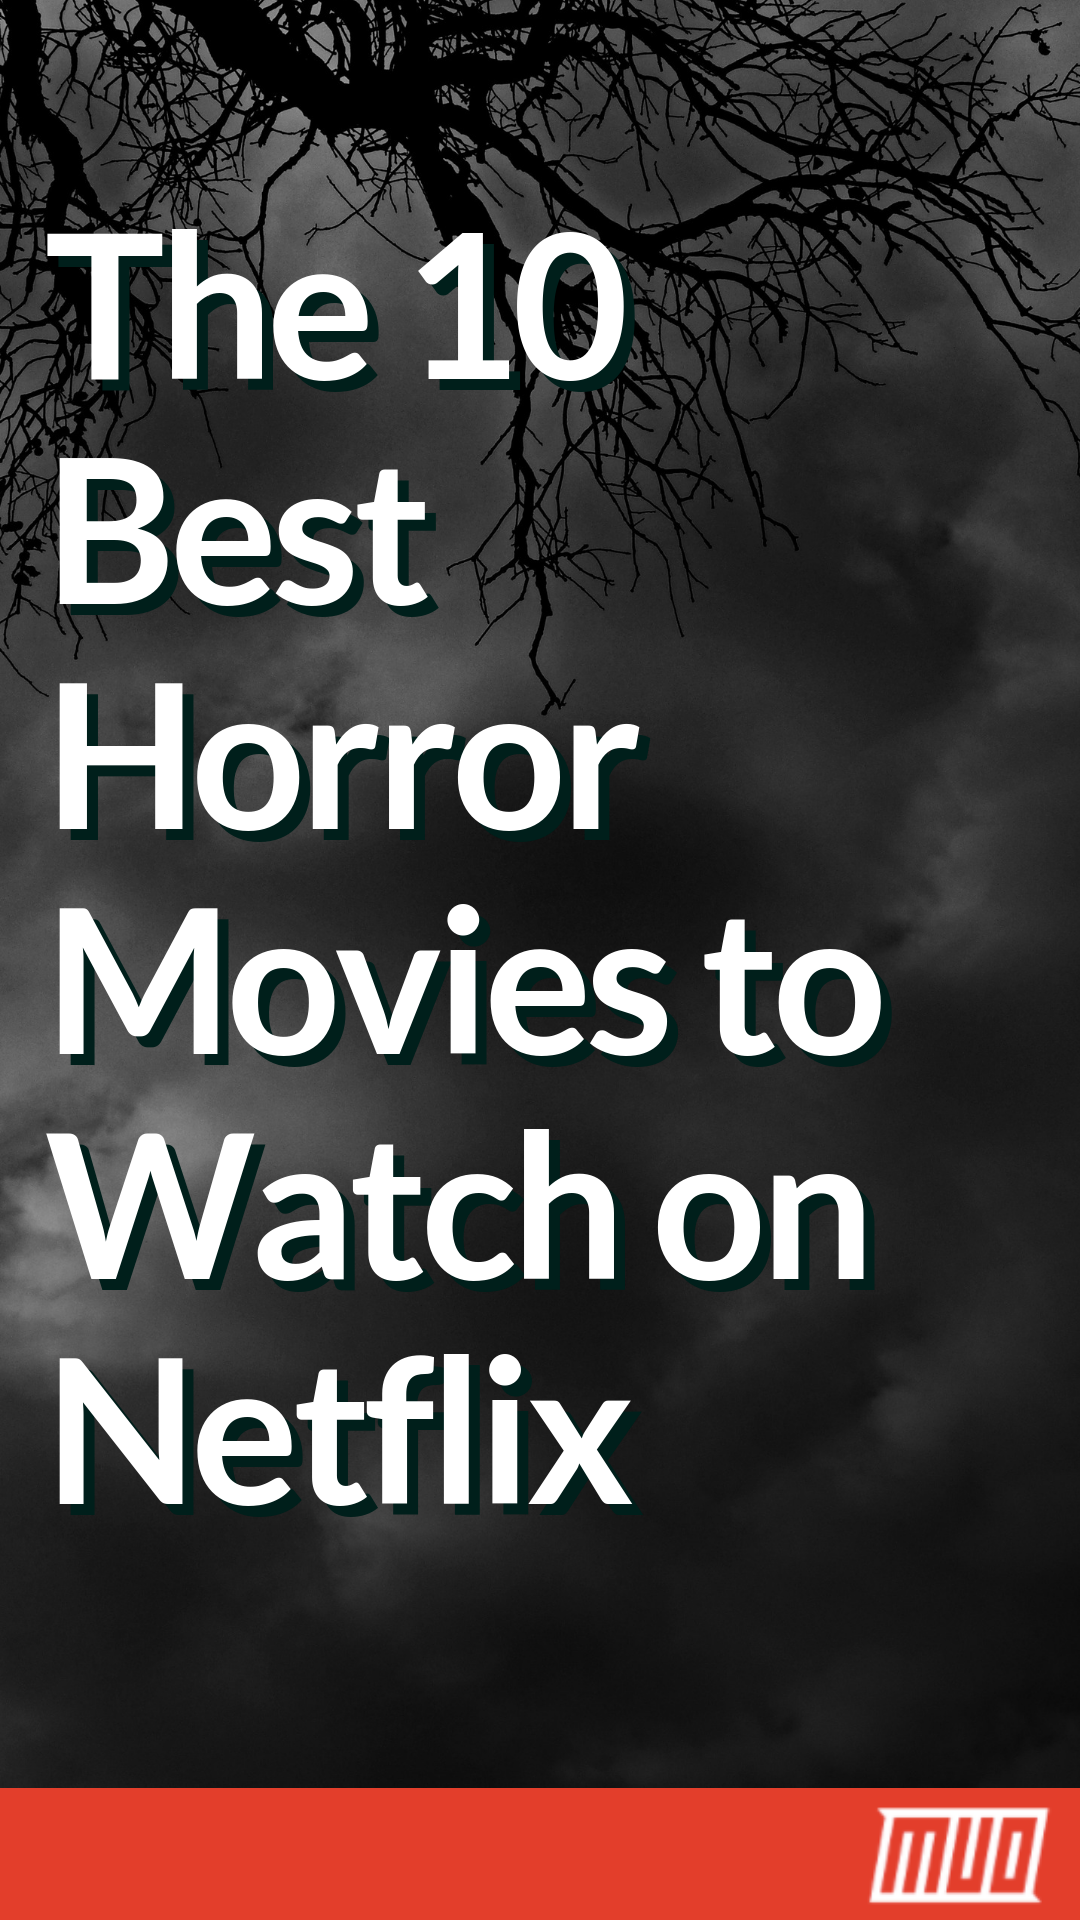 The 10 Best Horror Movies to Watch on Netflix